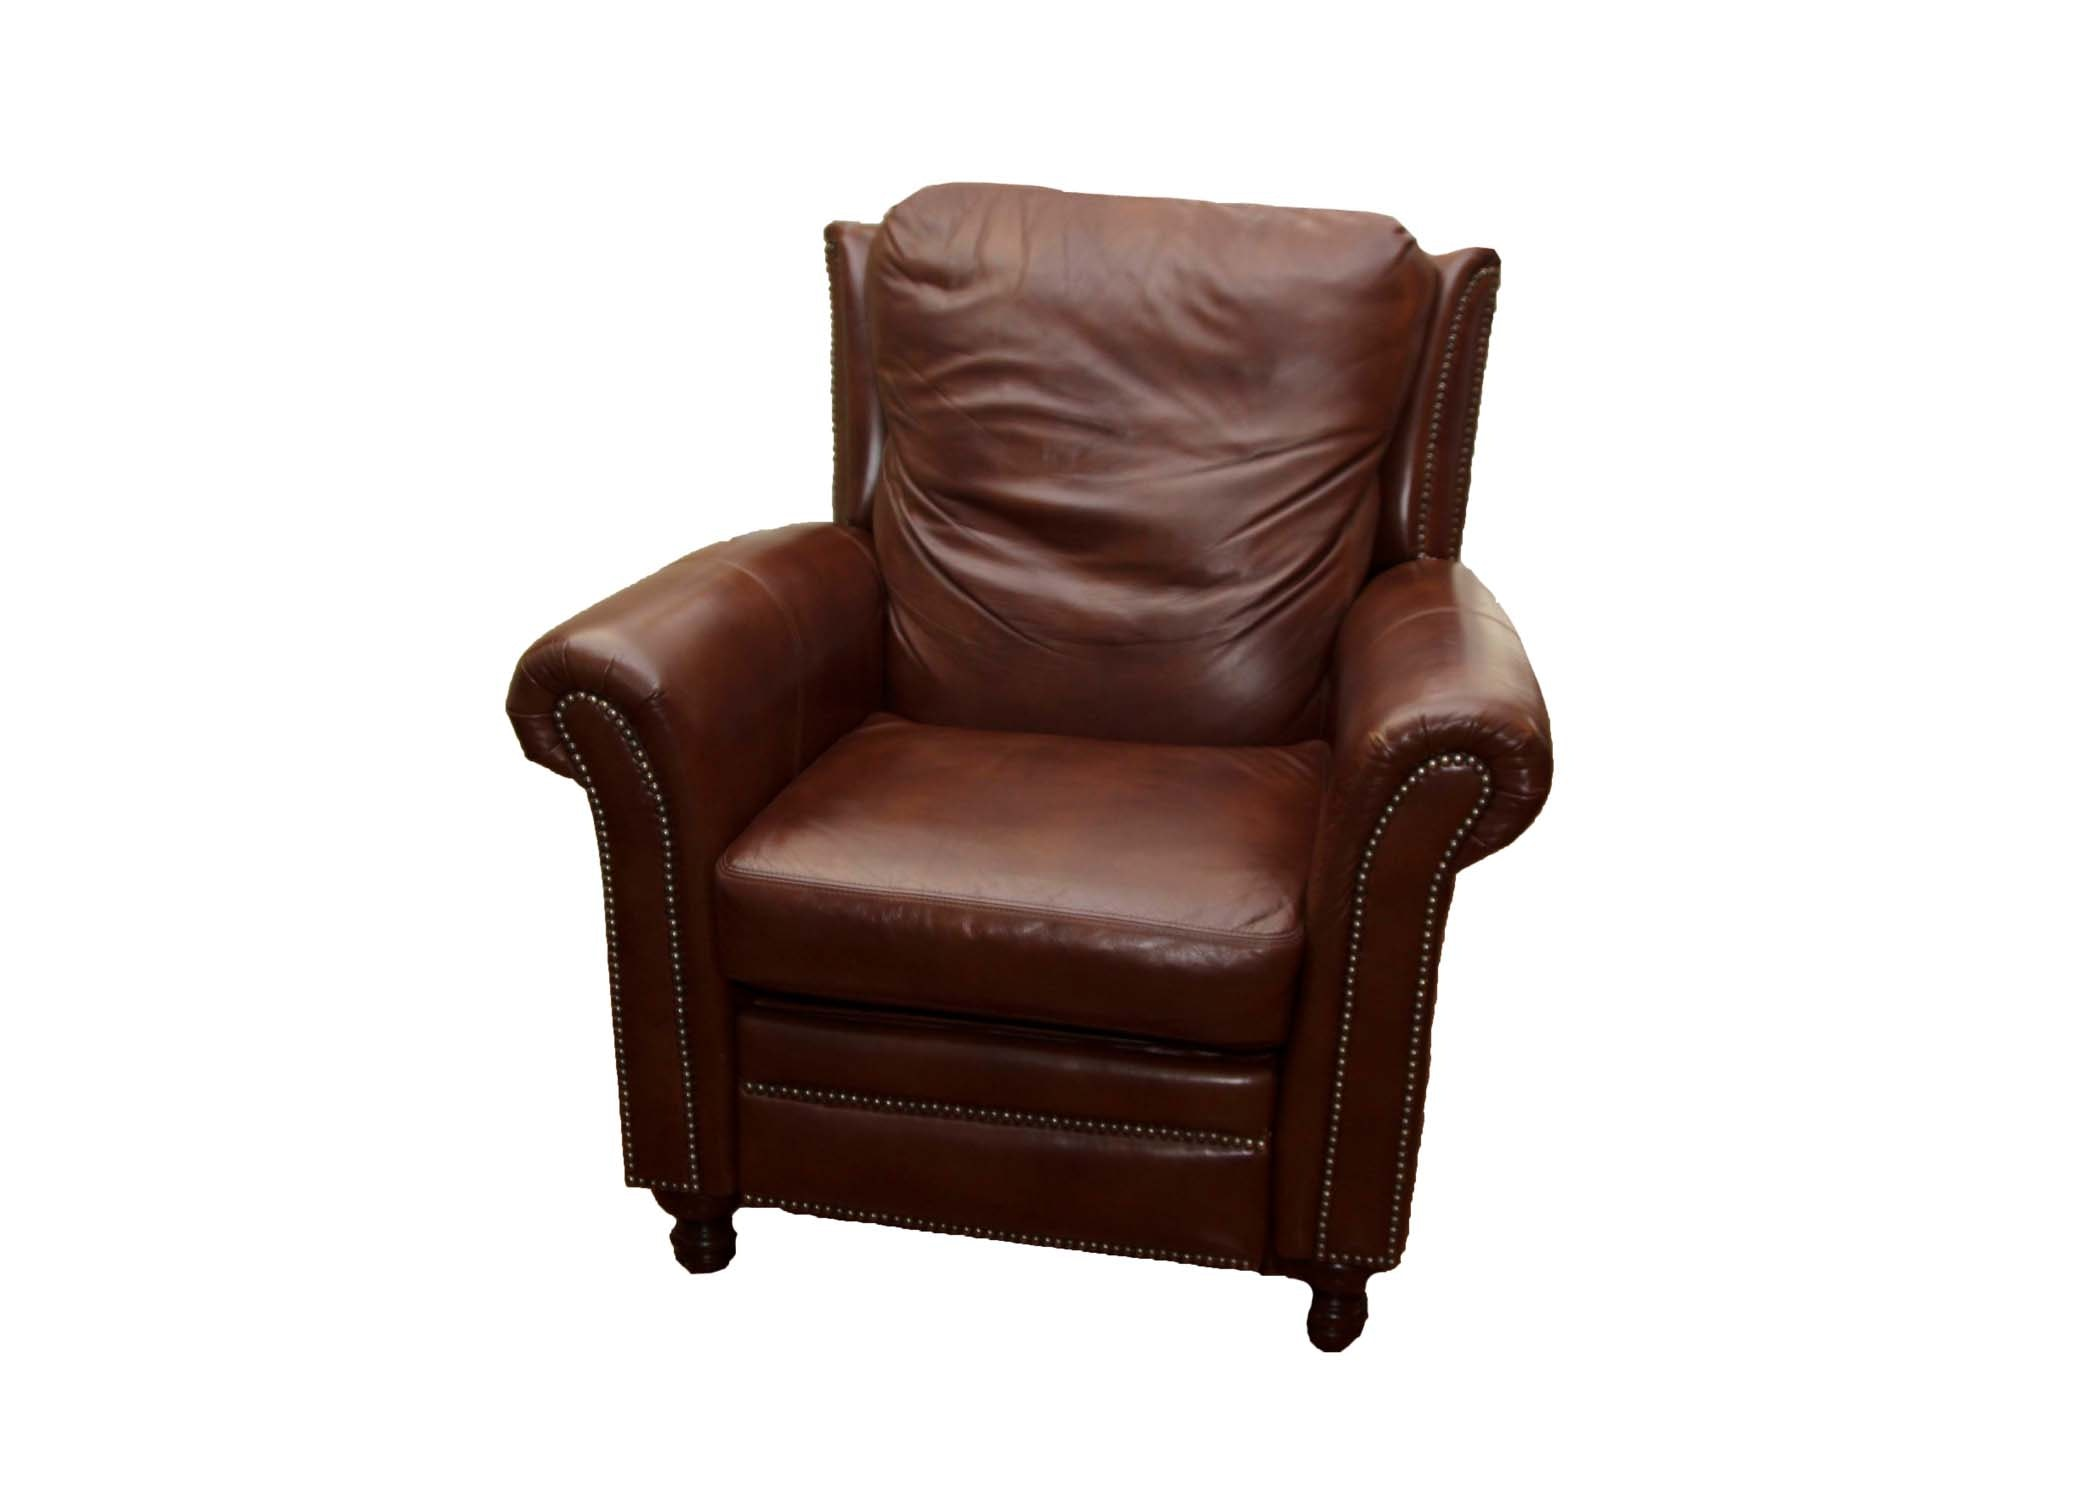 Bradington Young Brown Leather Recliner Chair